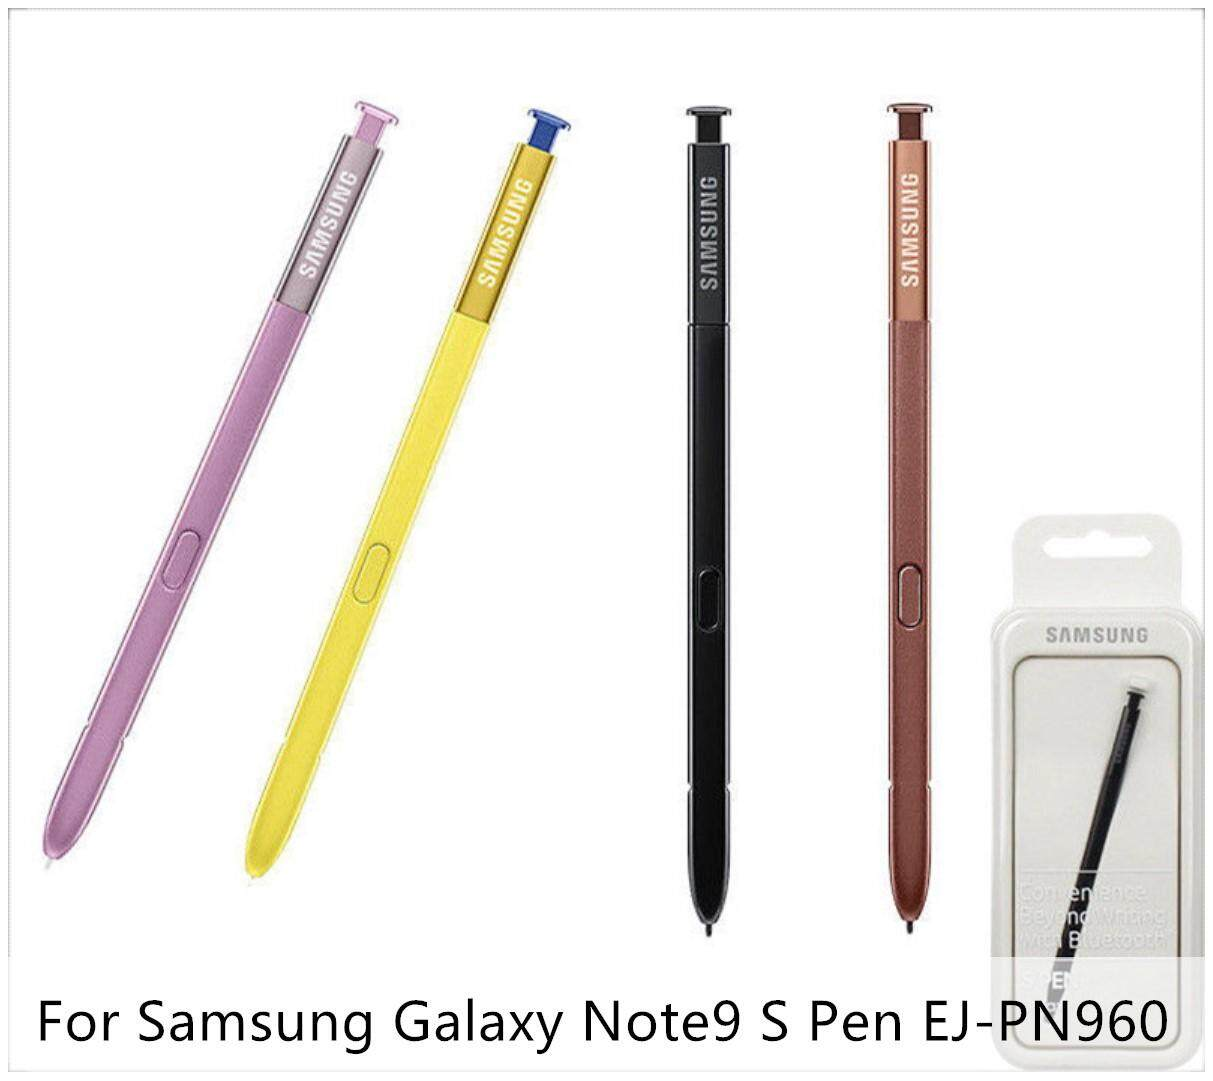 For Samsung Galaxy Note9 S Pen EJ-PN960 Stylus